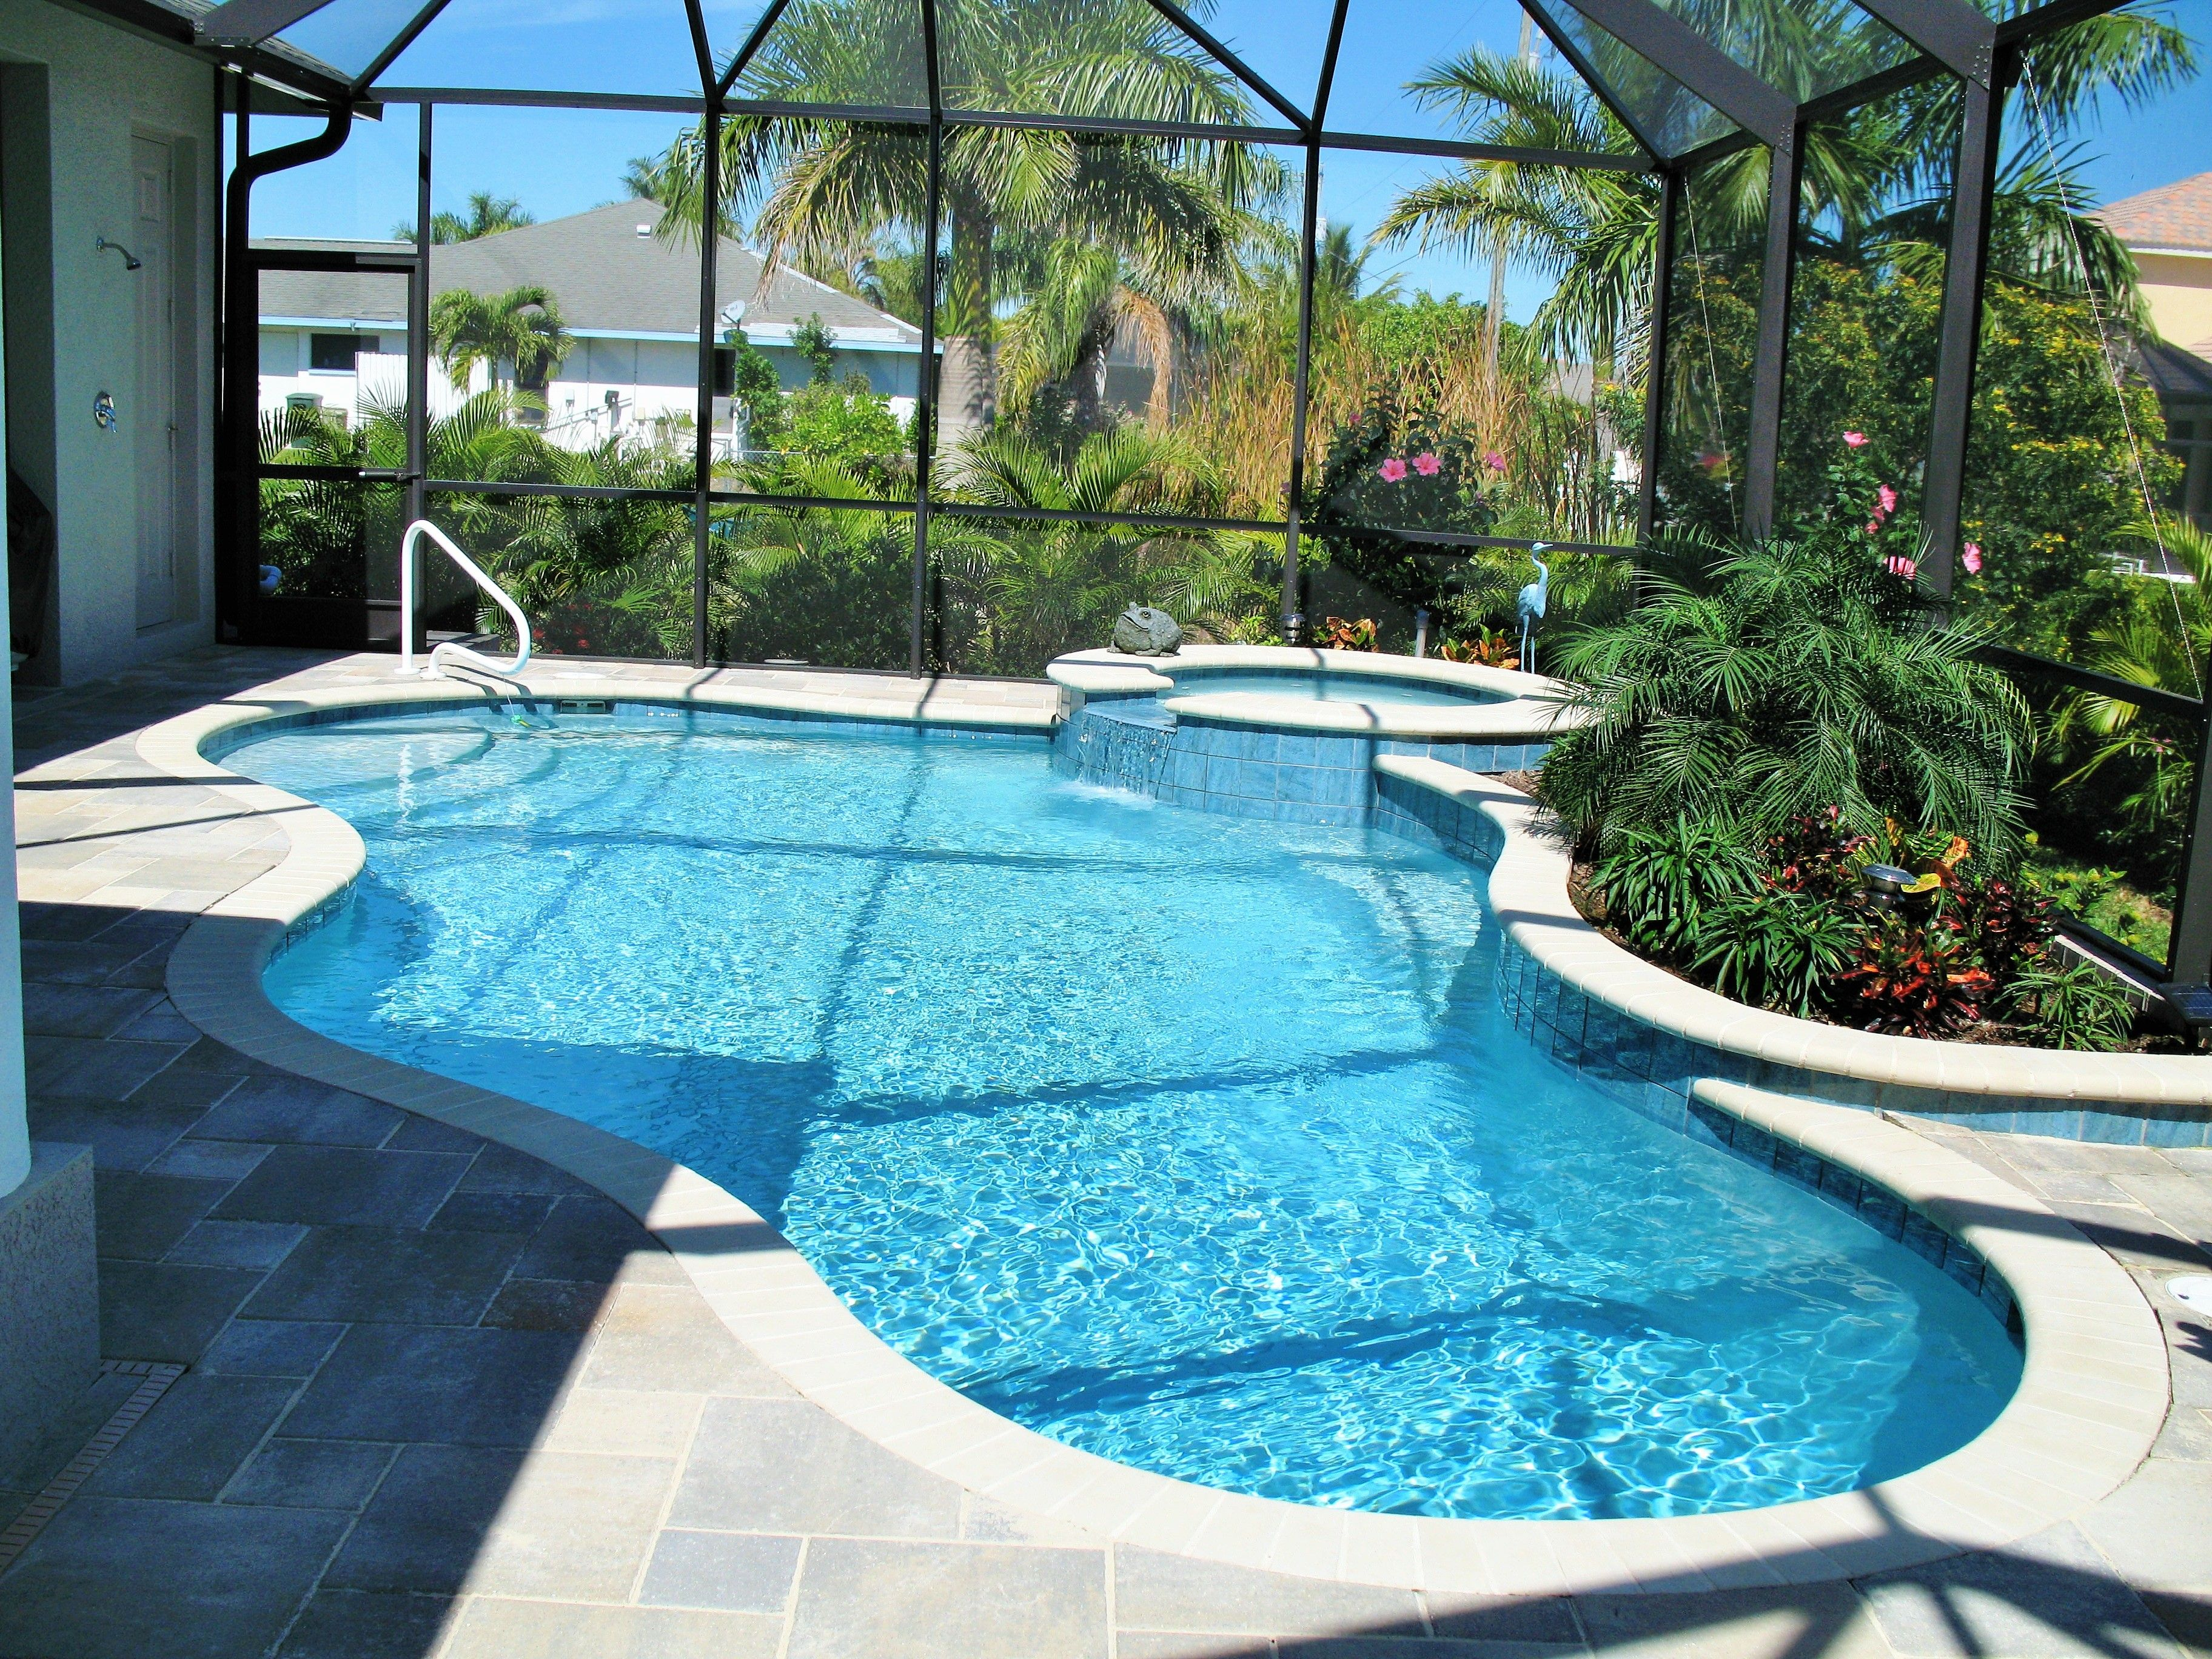 We Cater Full Service Commercial Swimming Pool Cleaning And Maintenance  Works For Both Small And